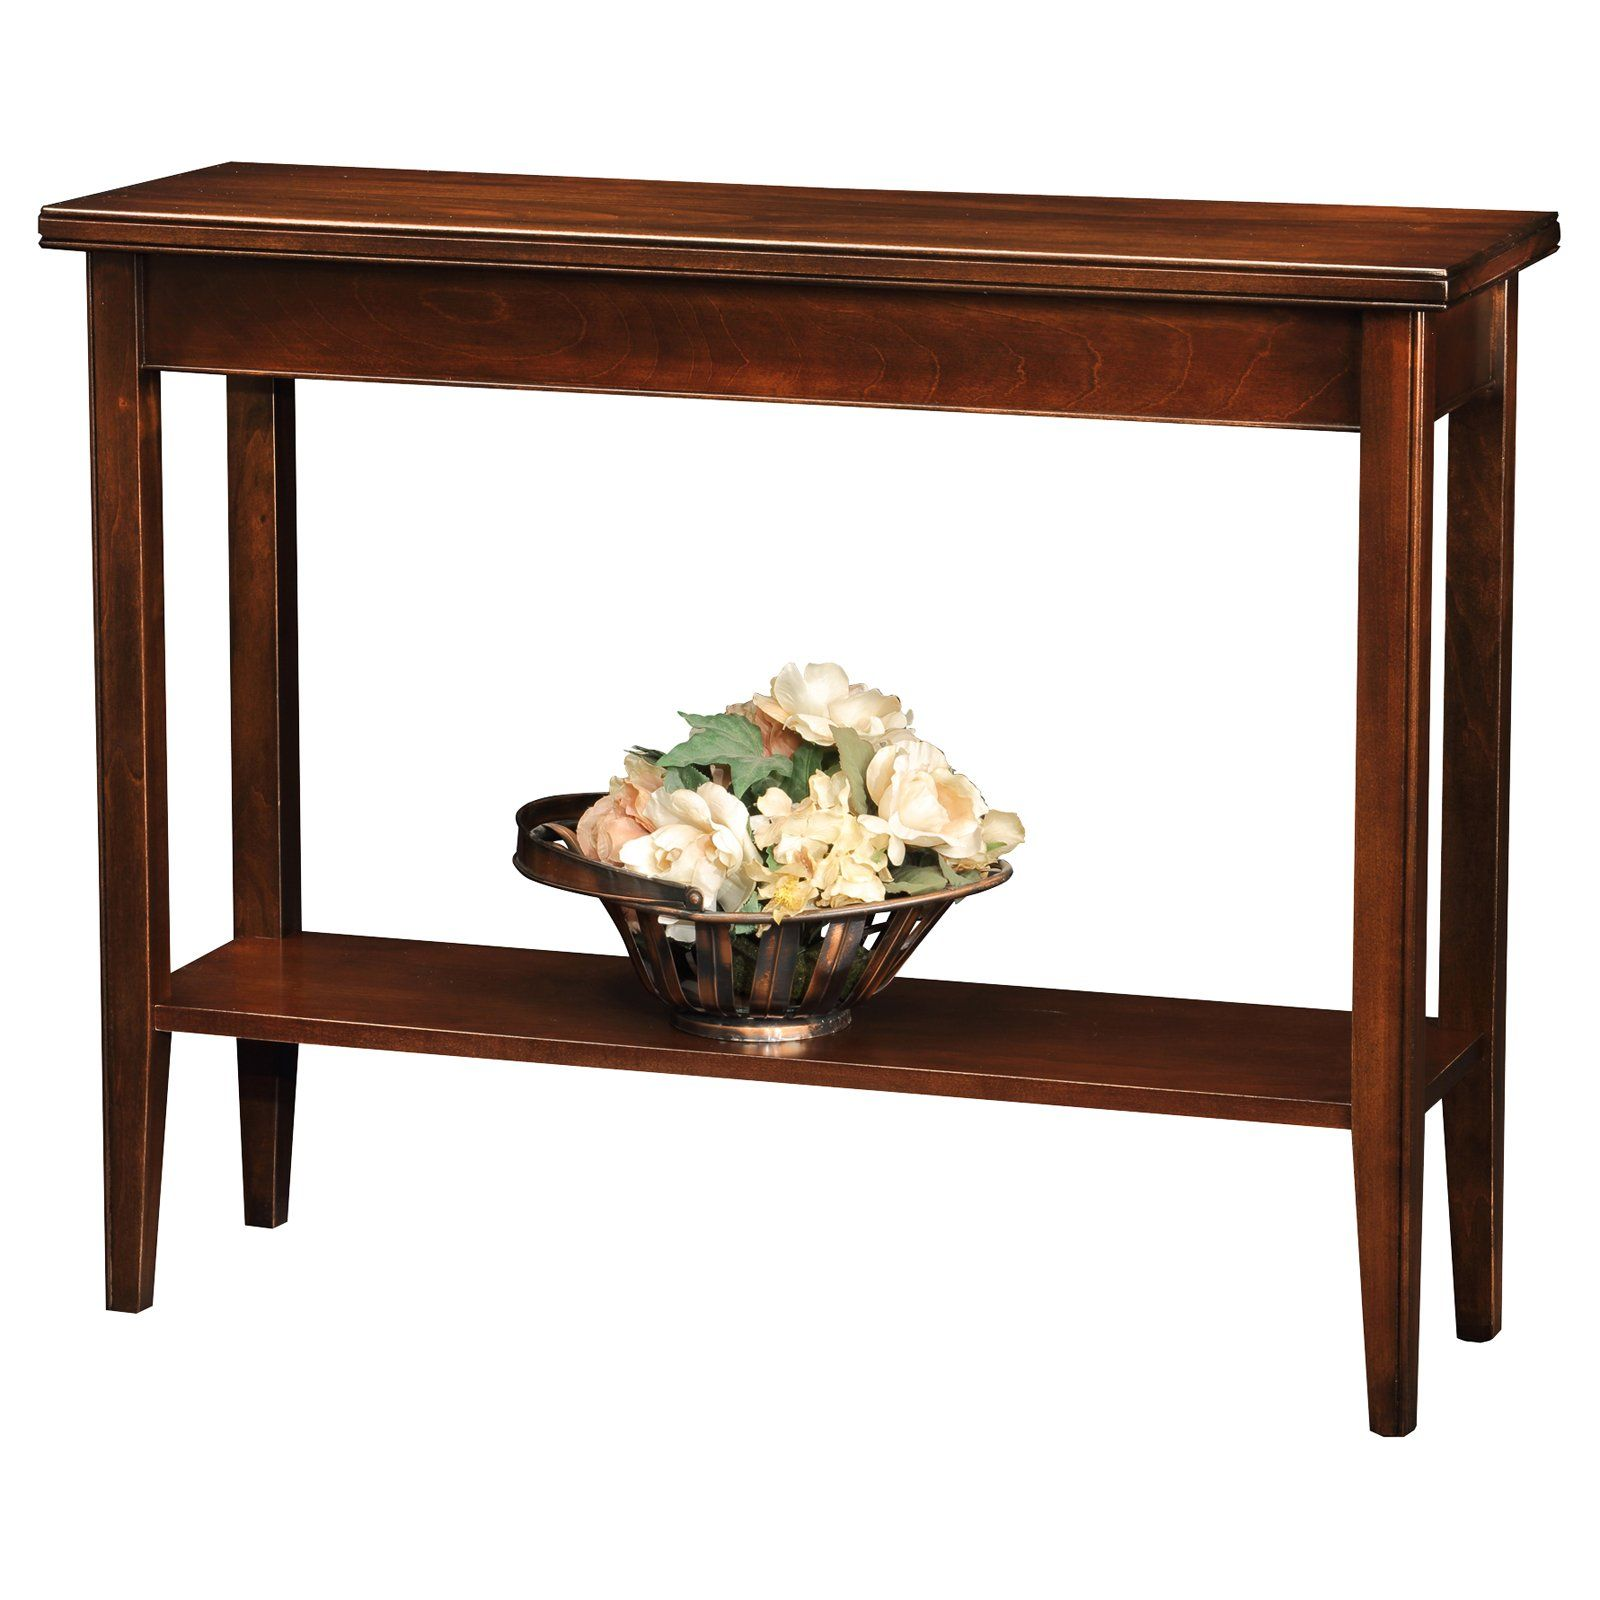 Leick Home Laurent Hall Stand Console Table Hall Console Table Furniture Table